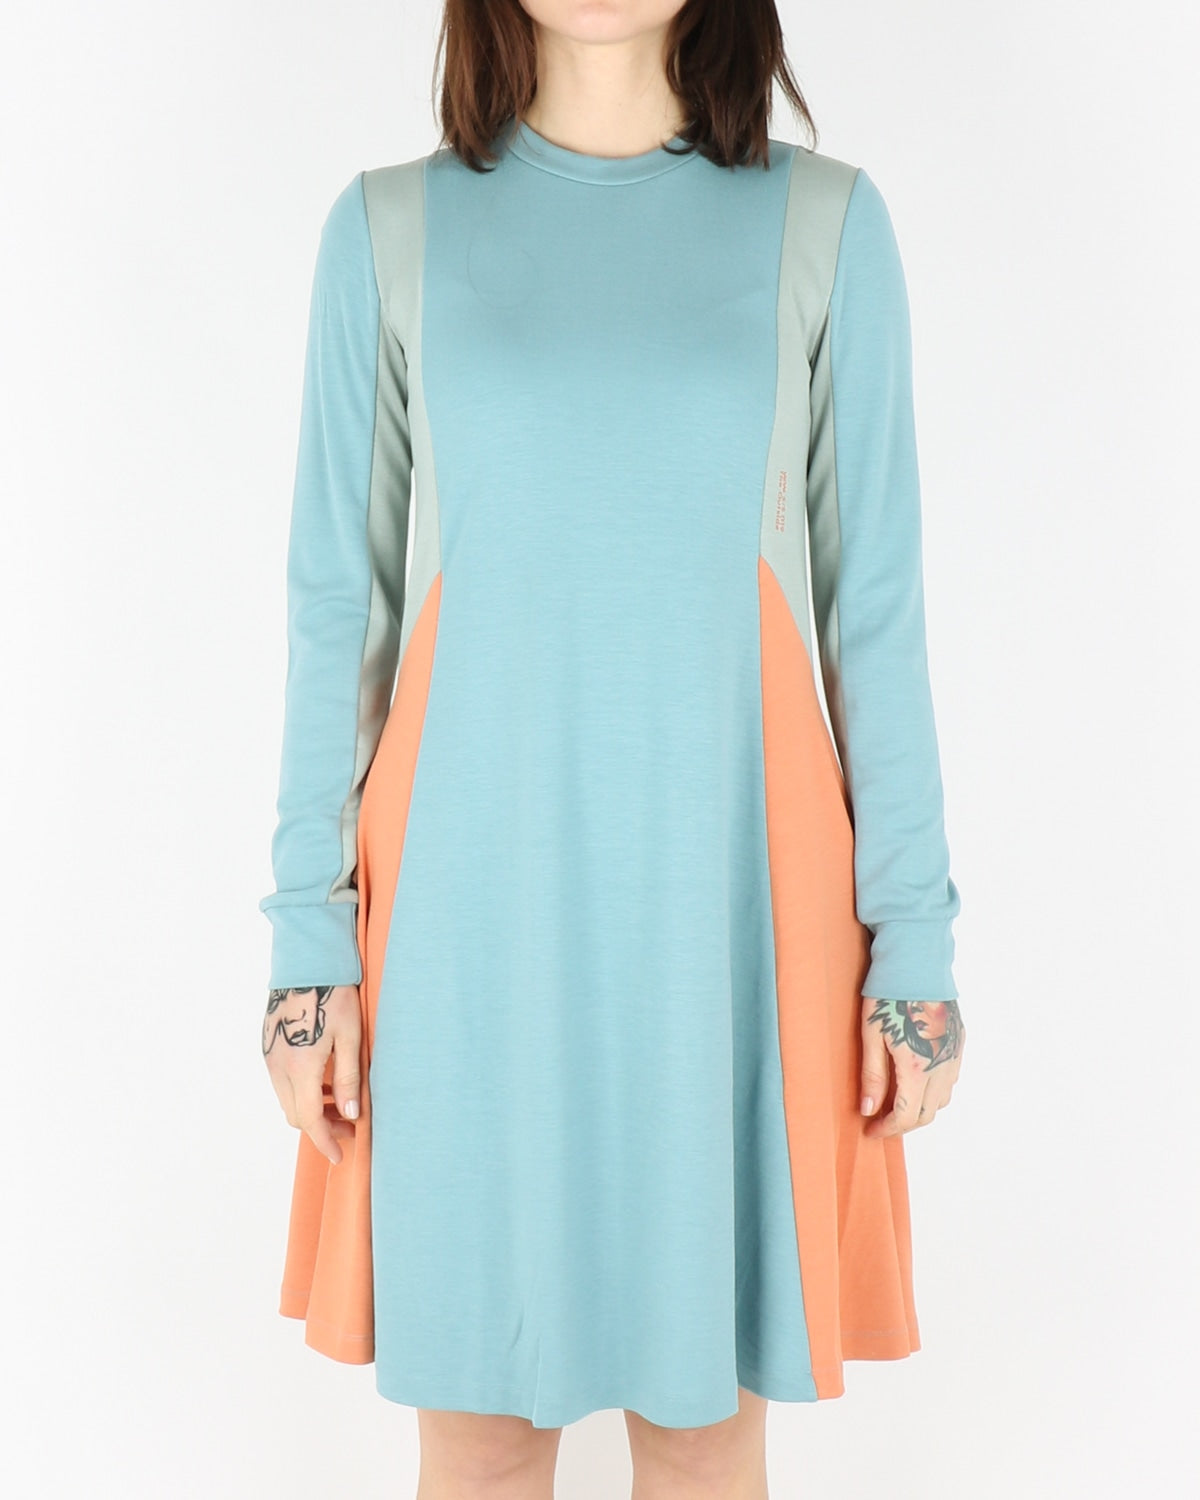 wood wood_mandy longsleeve dress_dusty blue colorblock_view_3_3